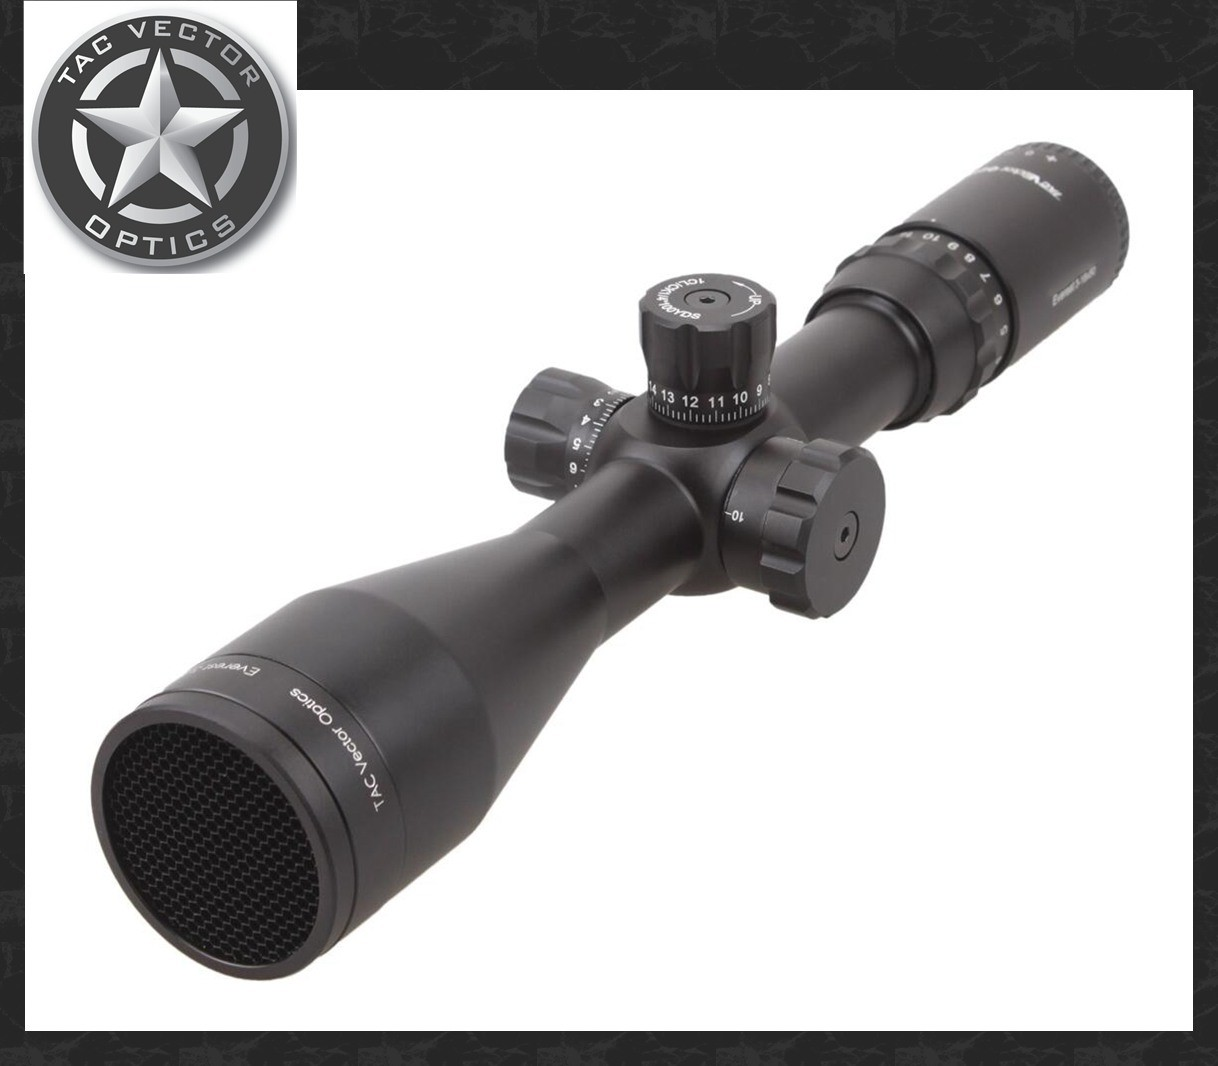 Vector Optics 3-18X50 Hunting Telescopic Sight Gun Riflescope